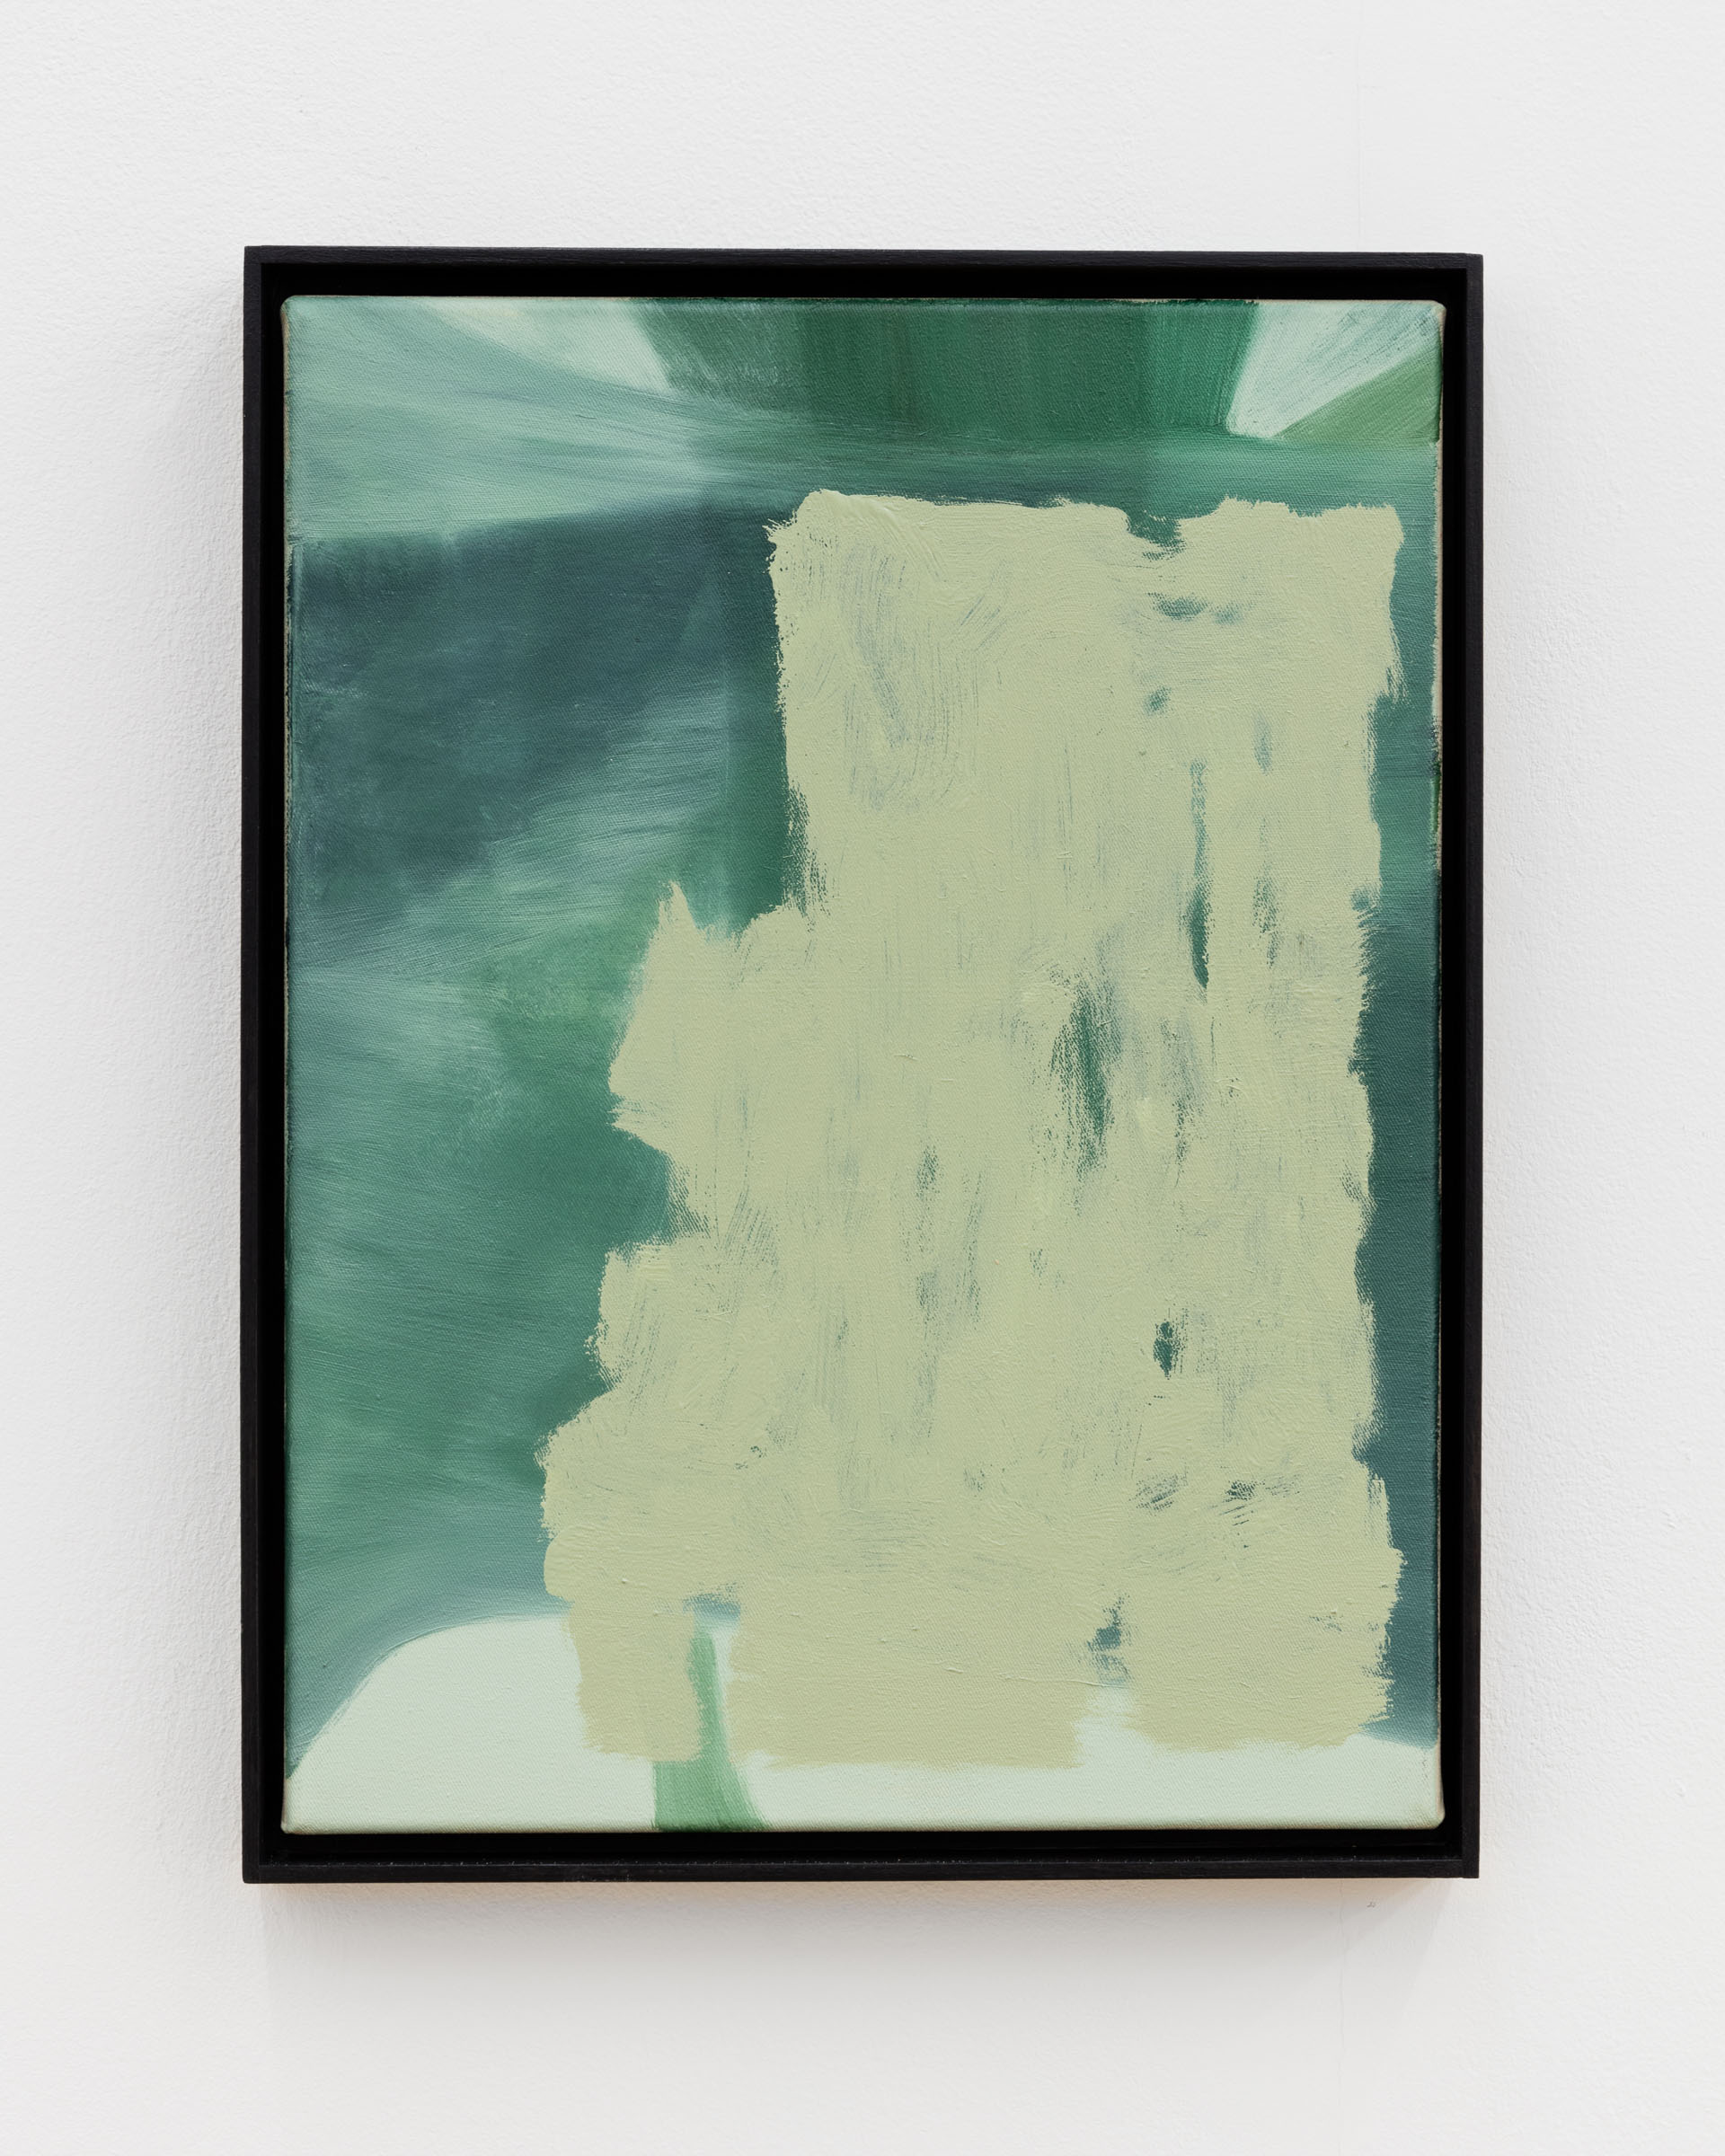 Veronika Hilger: Untitled, 2019, oil on canvas in artists frame, 40 x 30 cm